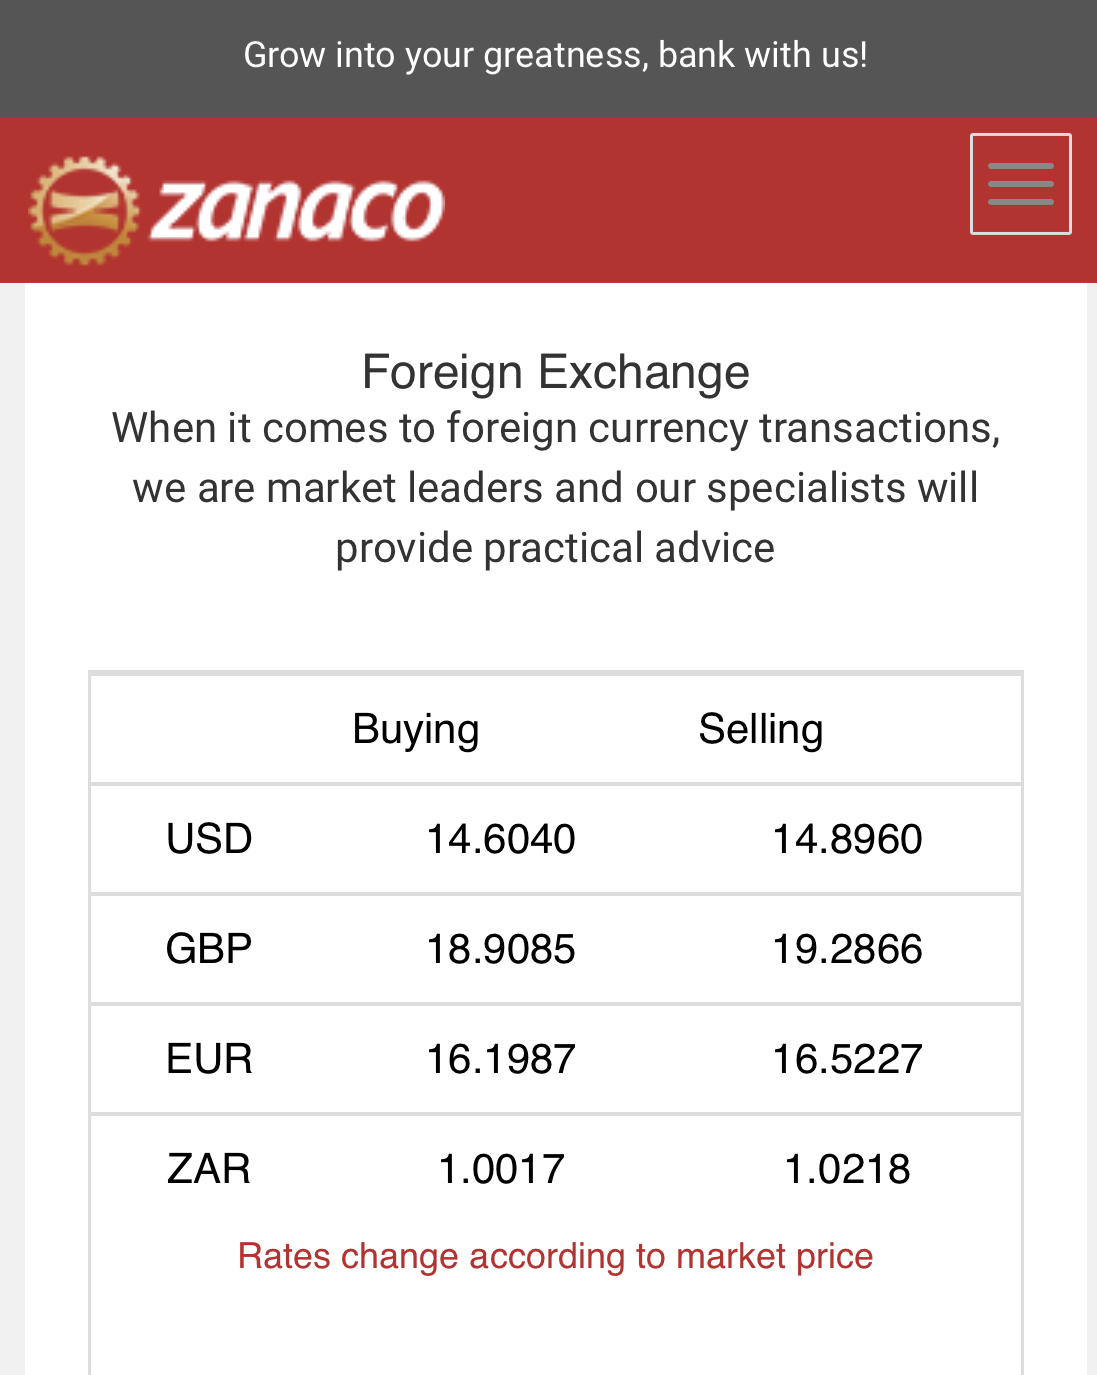 Kwacha loses more value